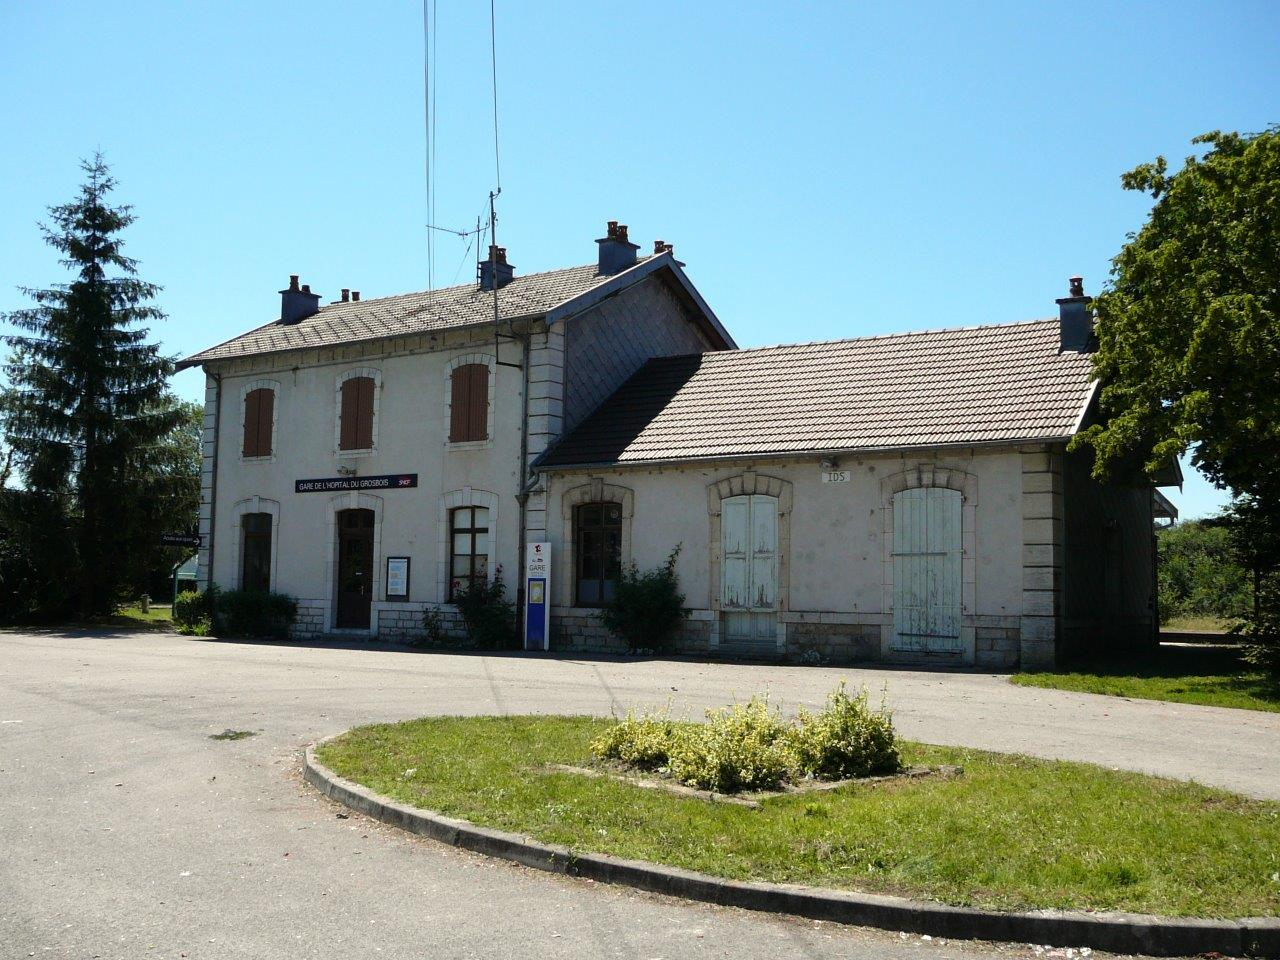 gare-de-l-hopital-du-grosbois-train-station